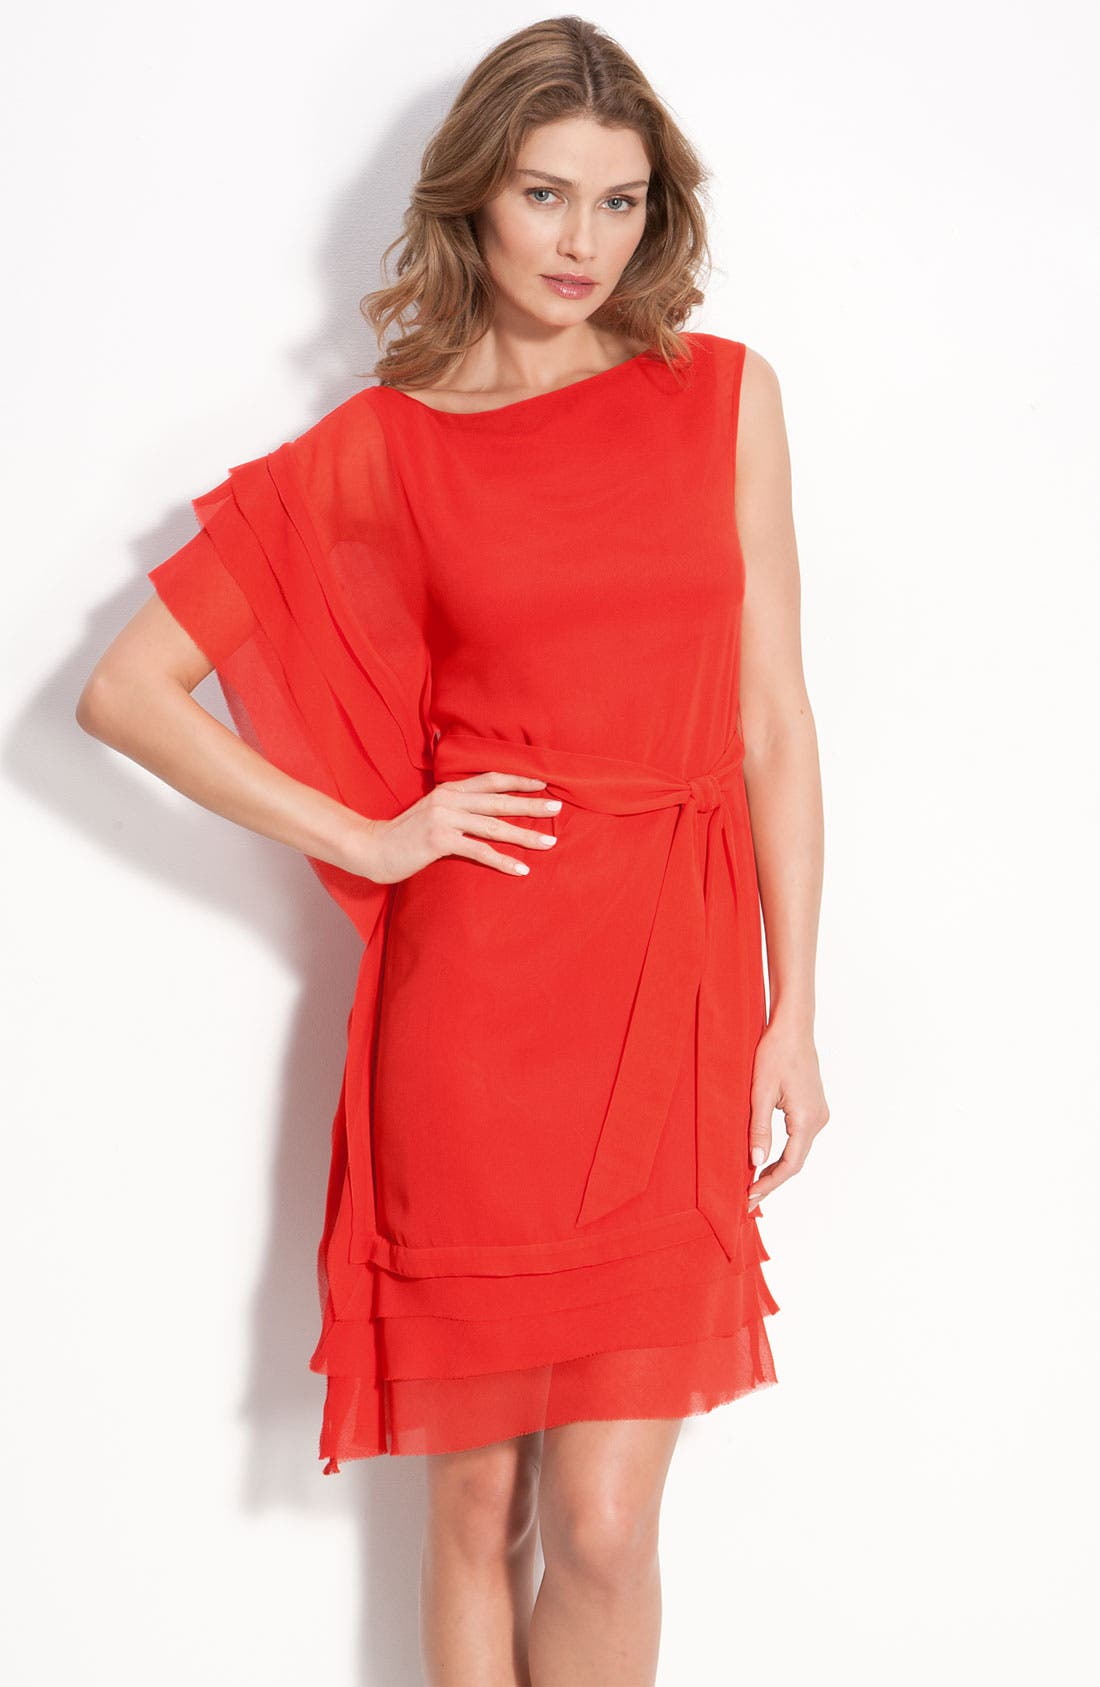 Main Image - Vince Camuto Asymmetrical Layered Dress with Sash Tie